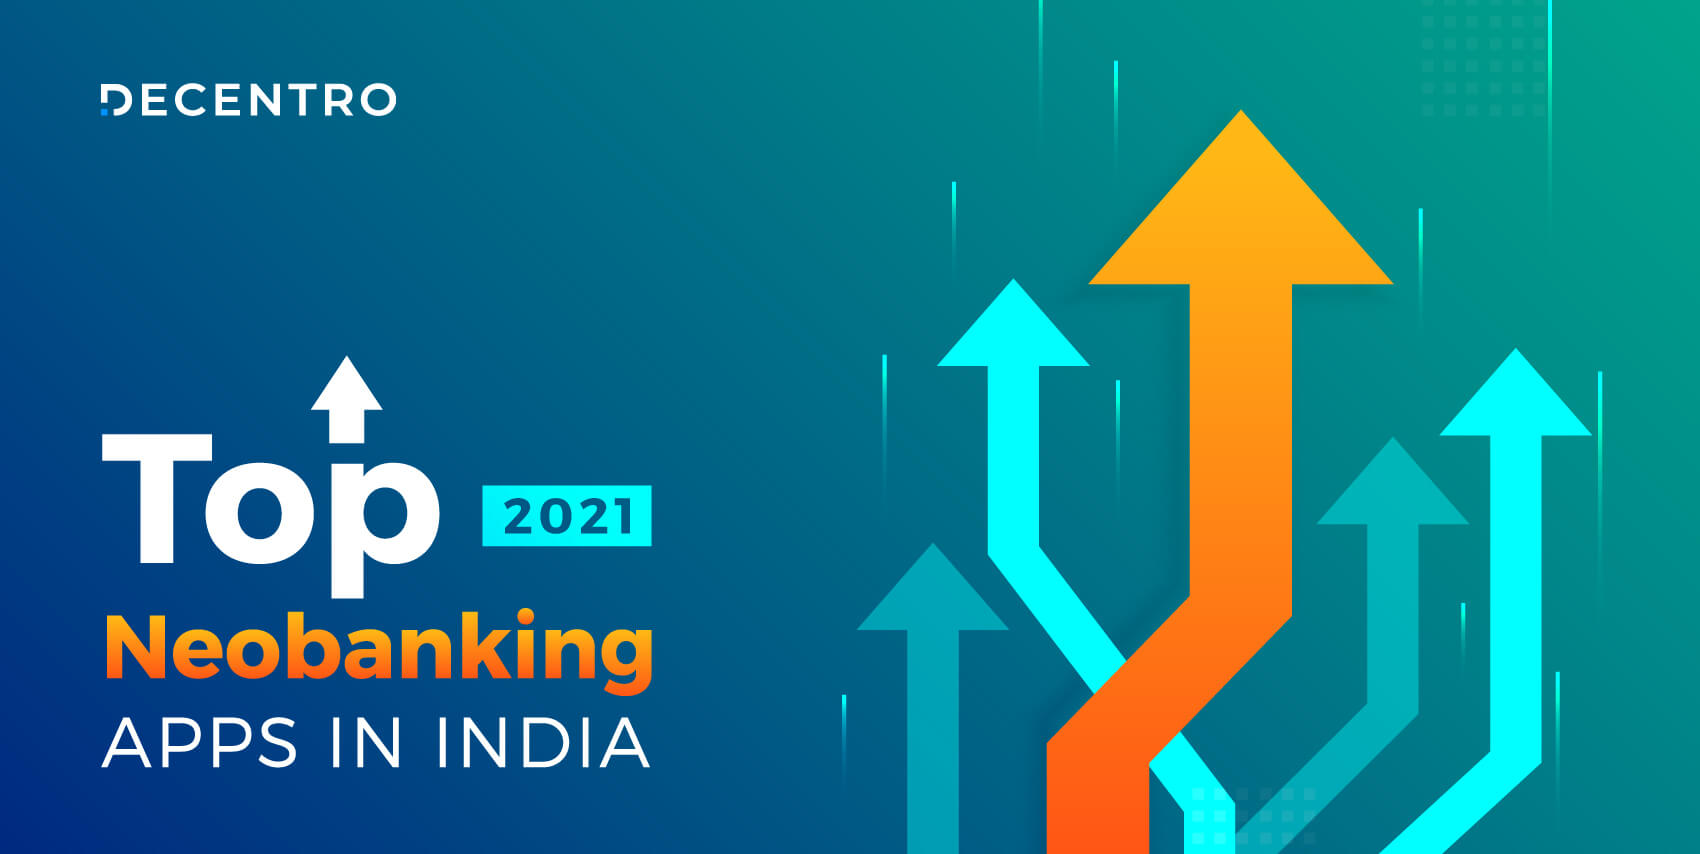 List of the best neobanking apps in India in 2021.